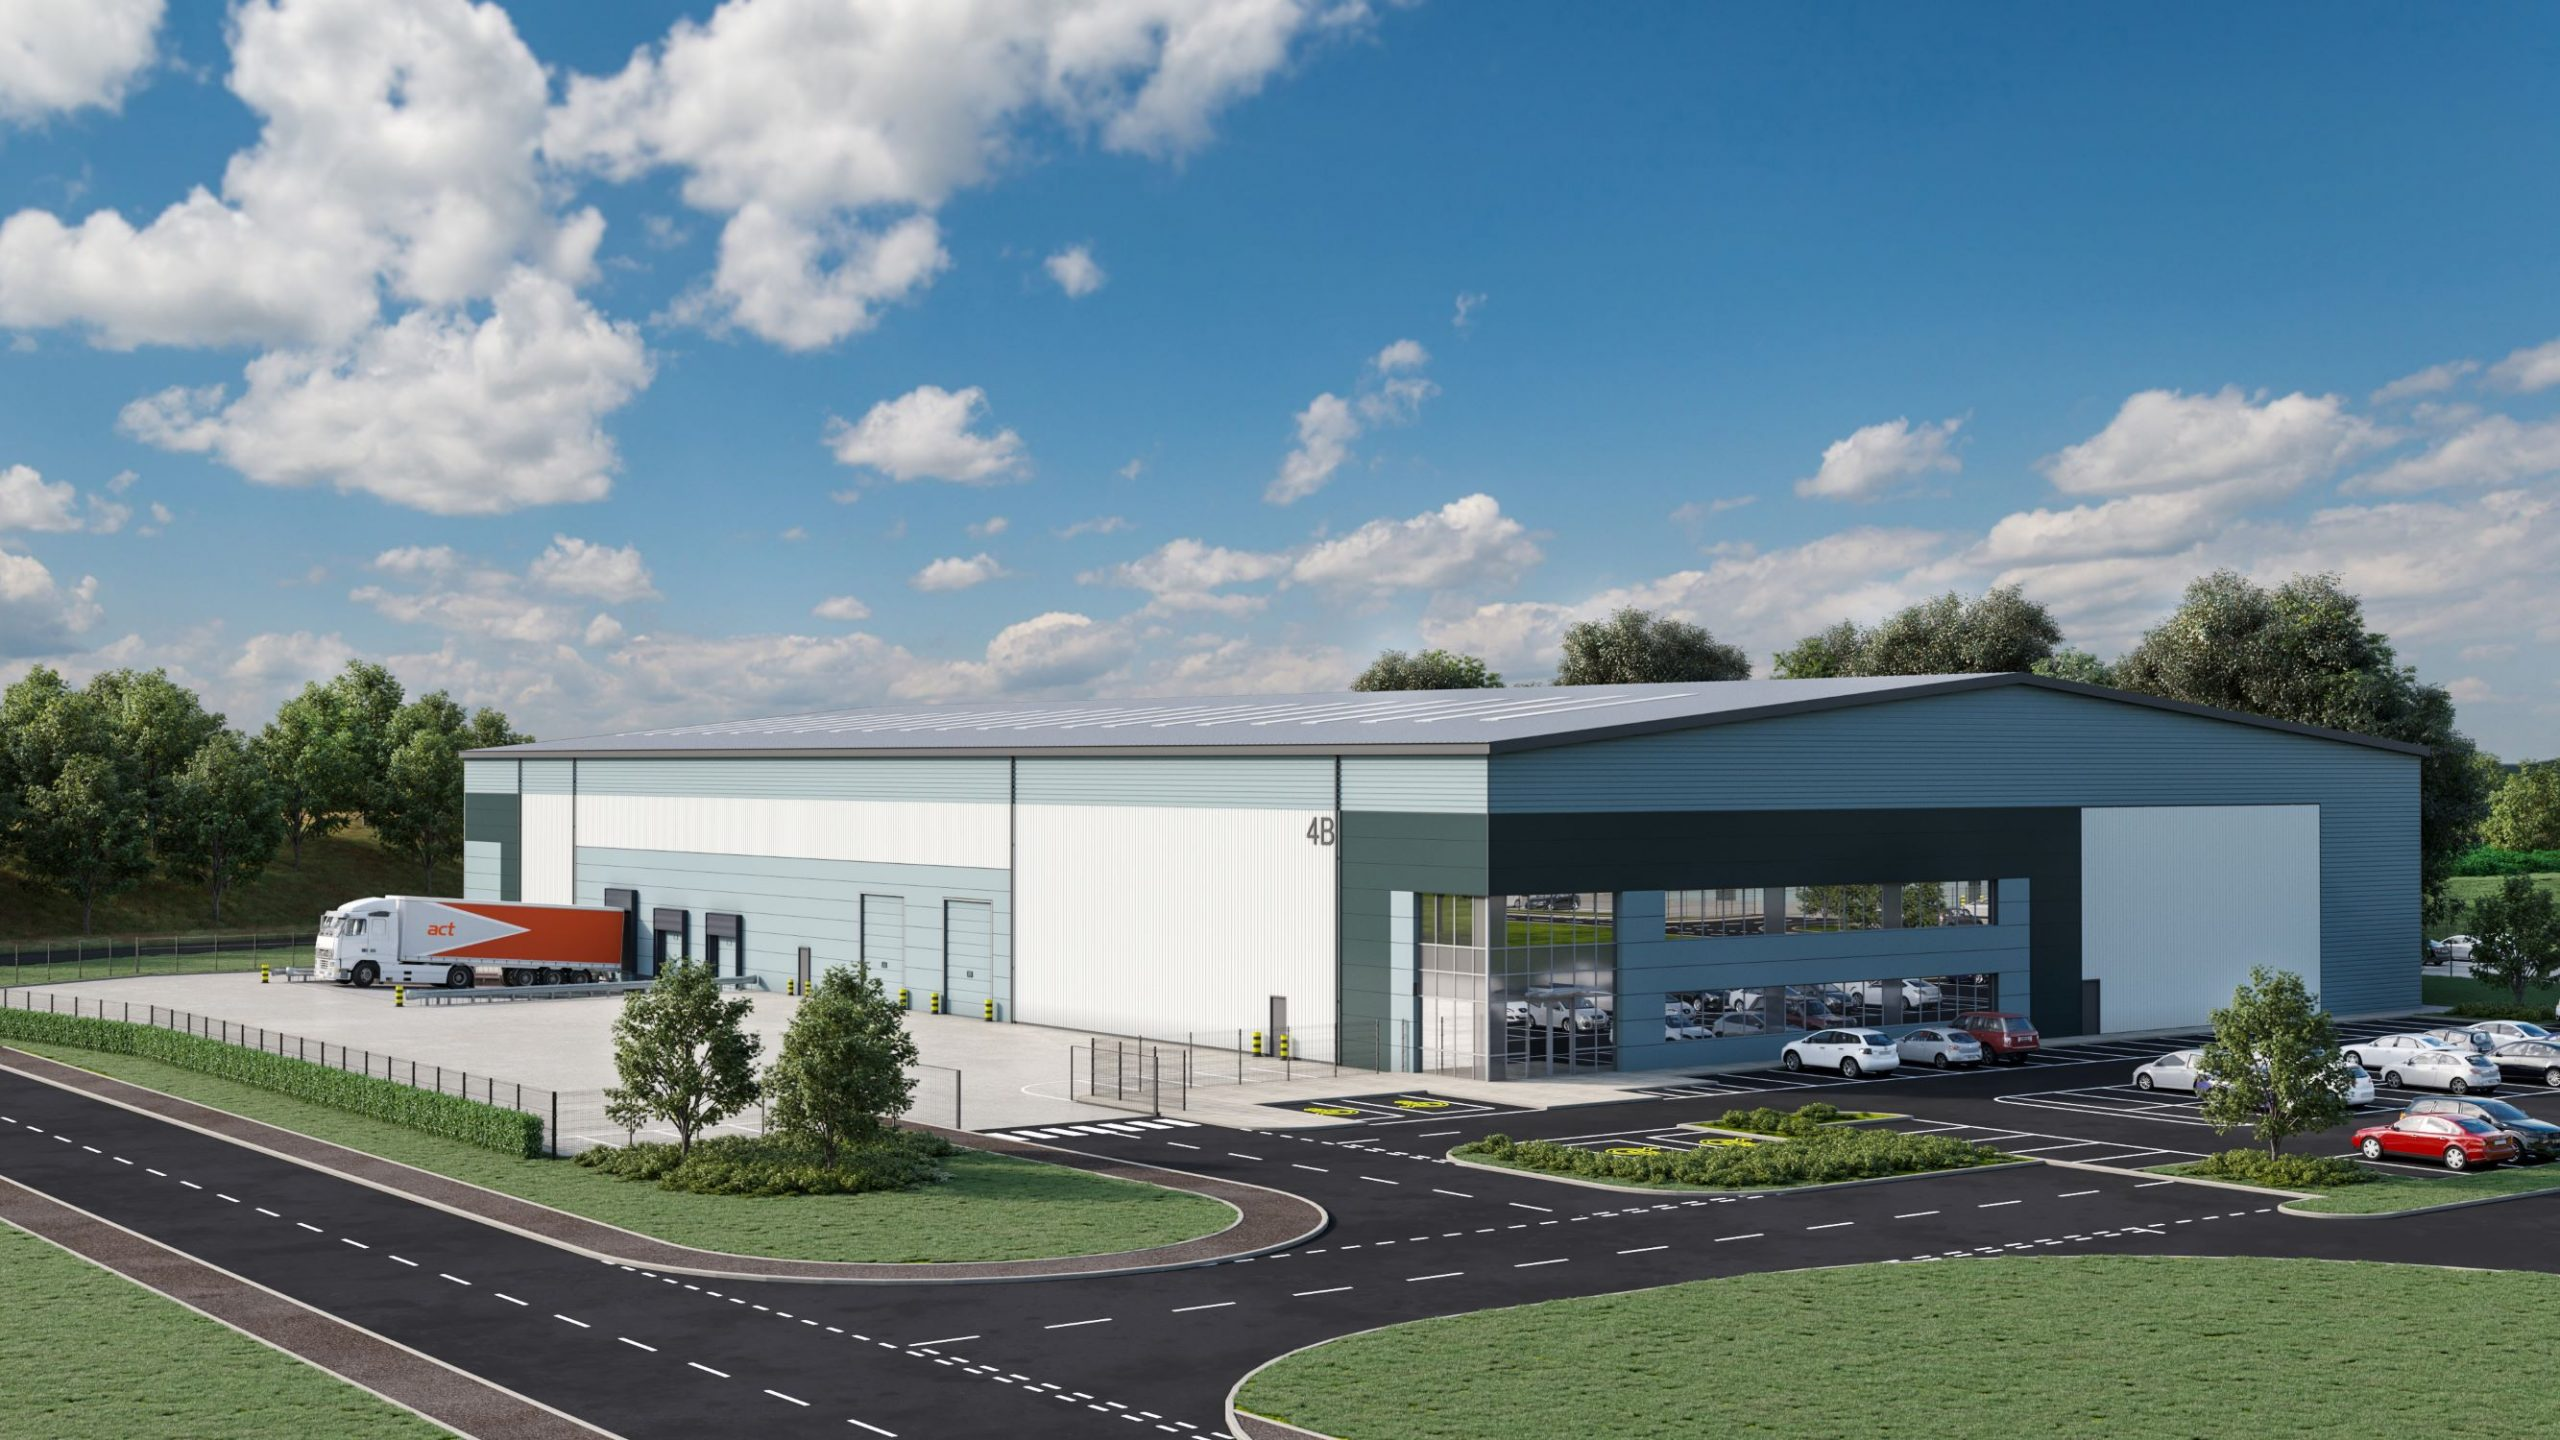 PLANNING SECURED FOR £24MILLION DEVELOPMENT IN YORKSHIRE